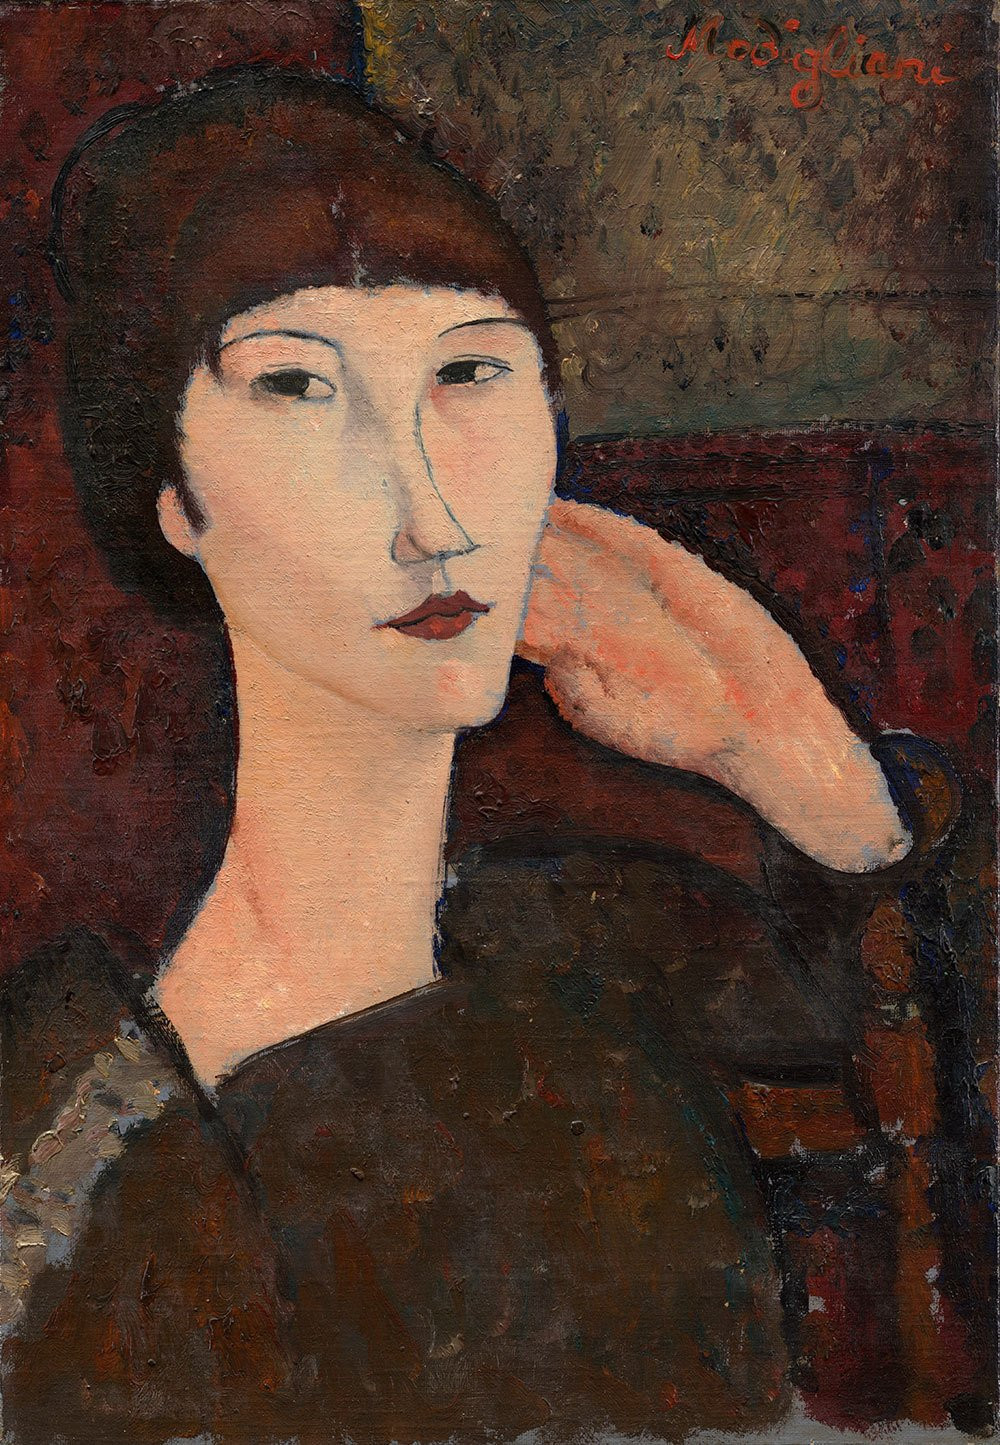 Modigliani, Woman With Bangs, 1917